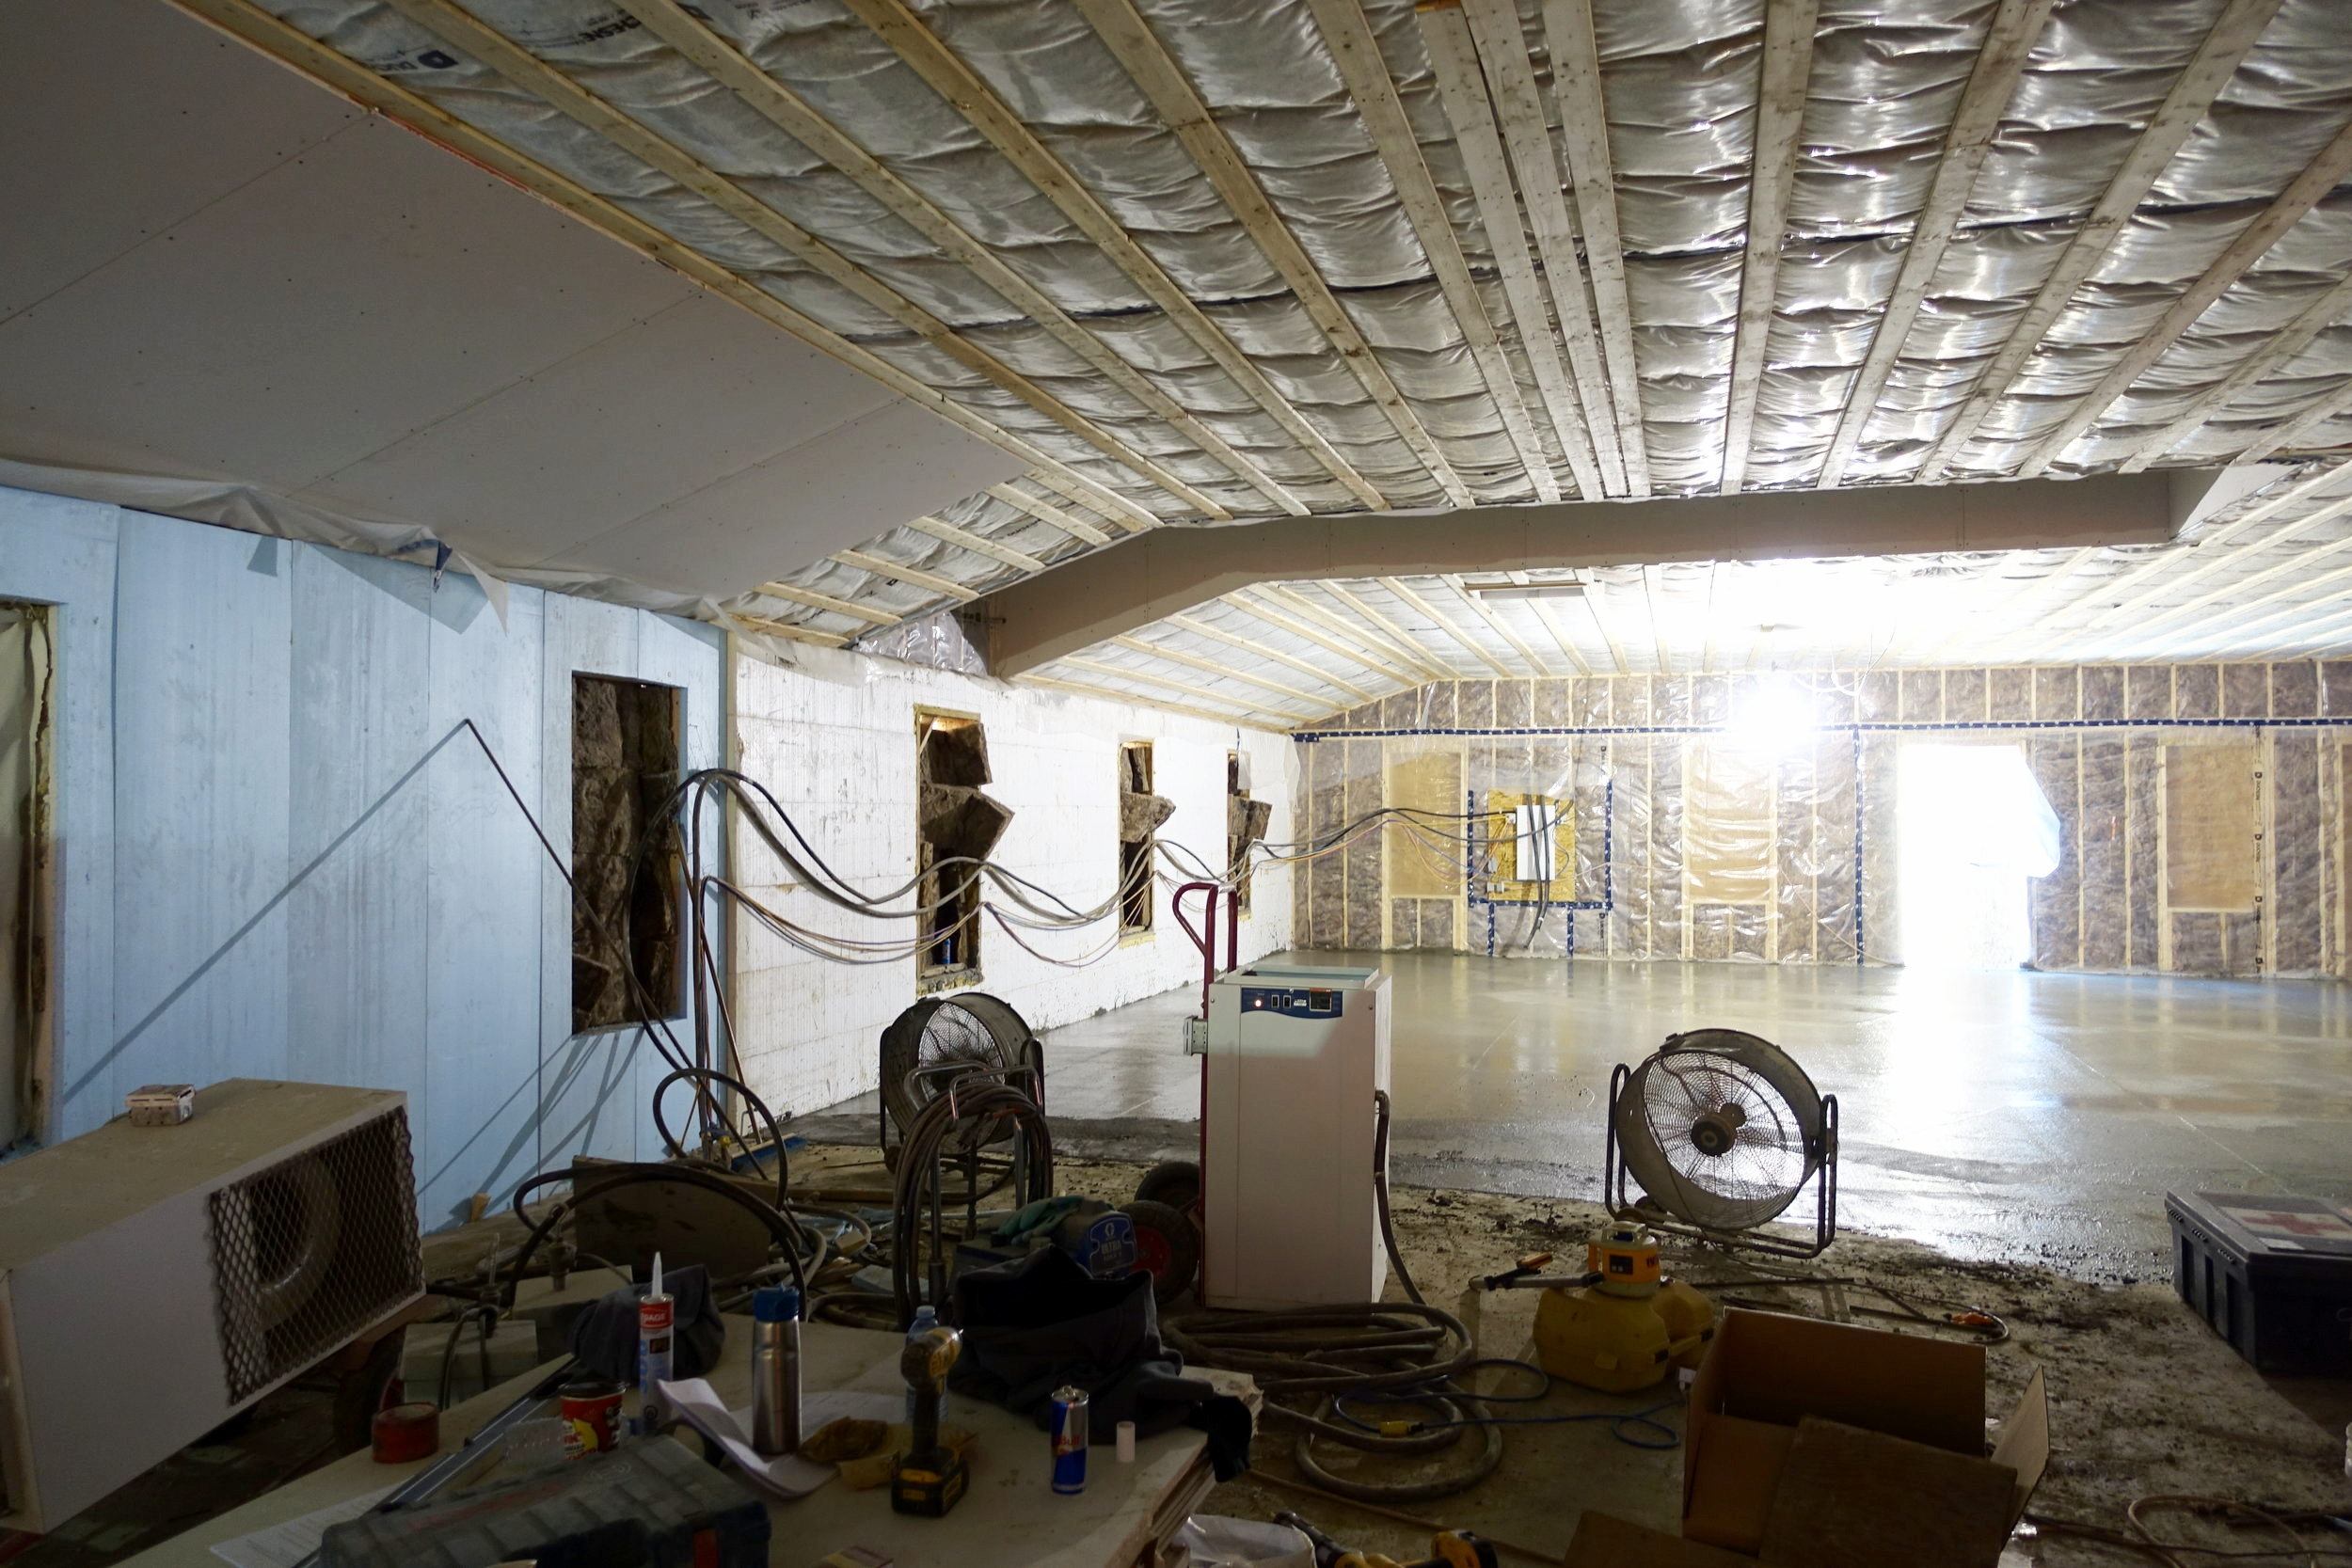 Here is a current view of the inside which will eventually turn into our beautiful new office space.